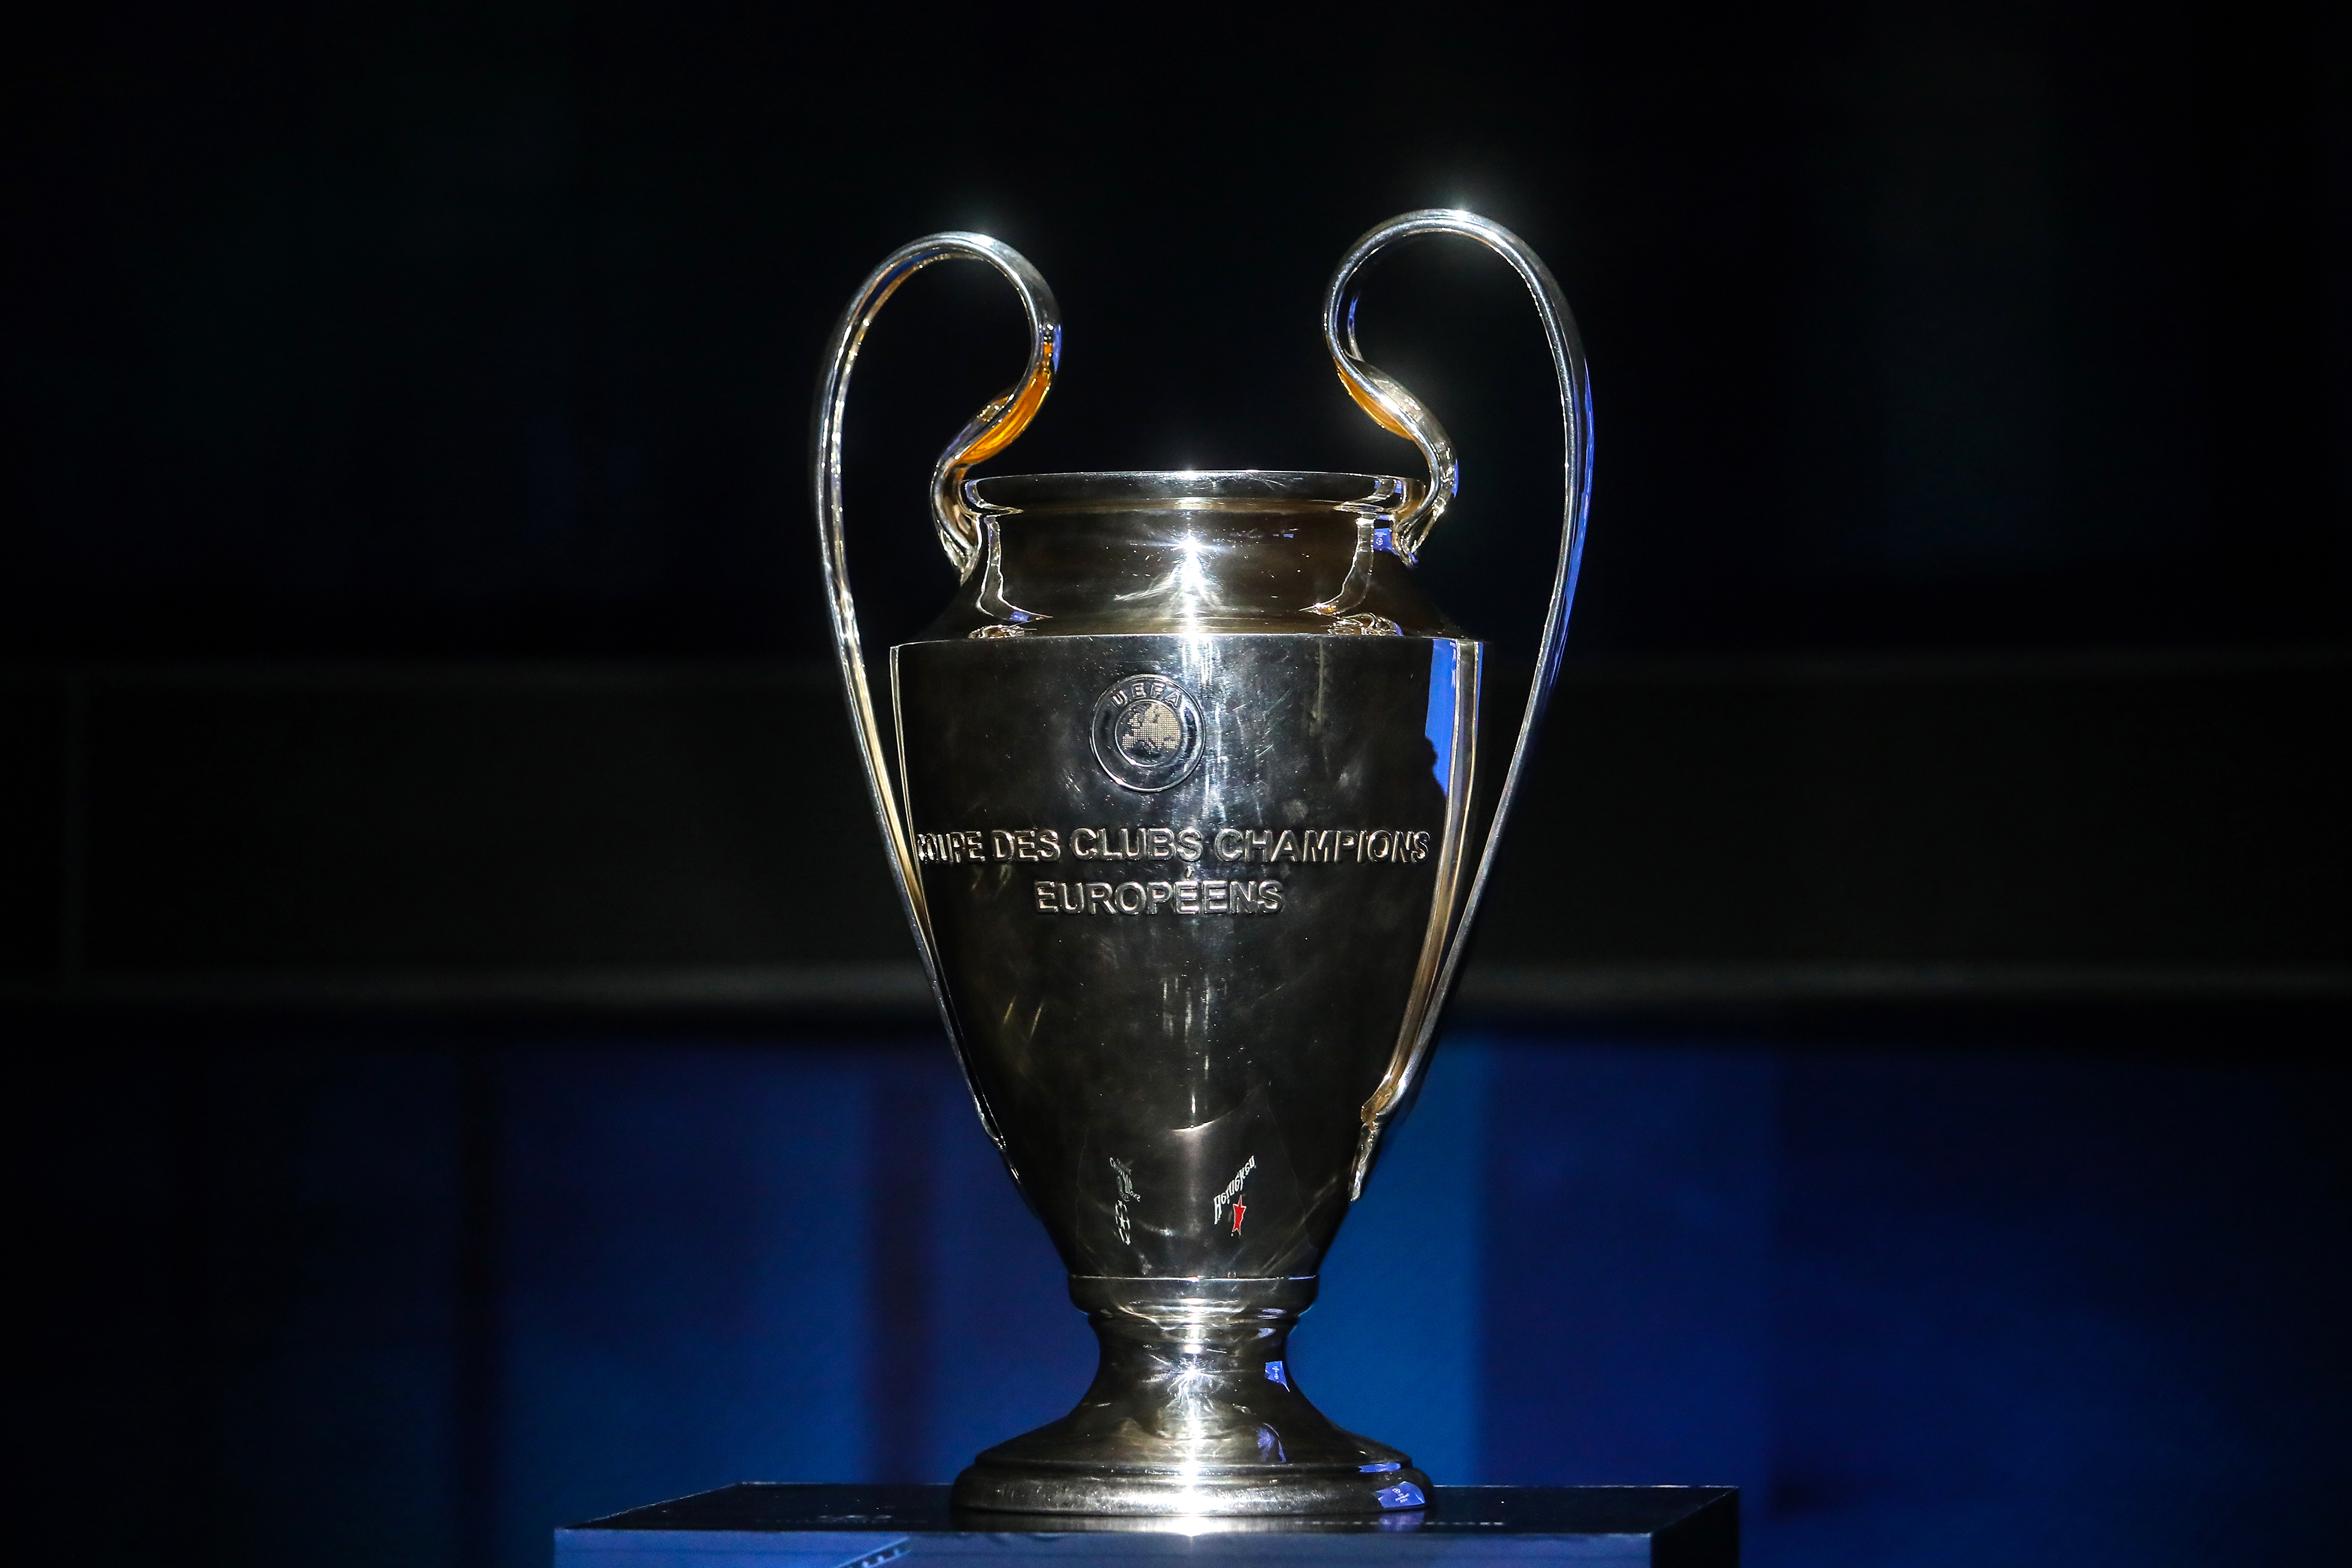 MEXICO CITY, MEXICO - MARCH 09: UEFA Champions League Trophy is displayed during the UEFA Champions League Trophy Tour presented by Heineken on March 09, 2018 in Mexico City, Mexico. (Photo by Hector Vivas/Getty Images)